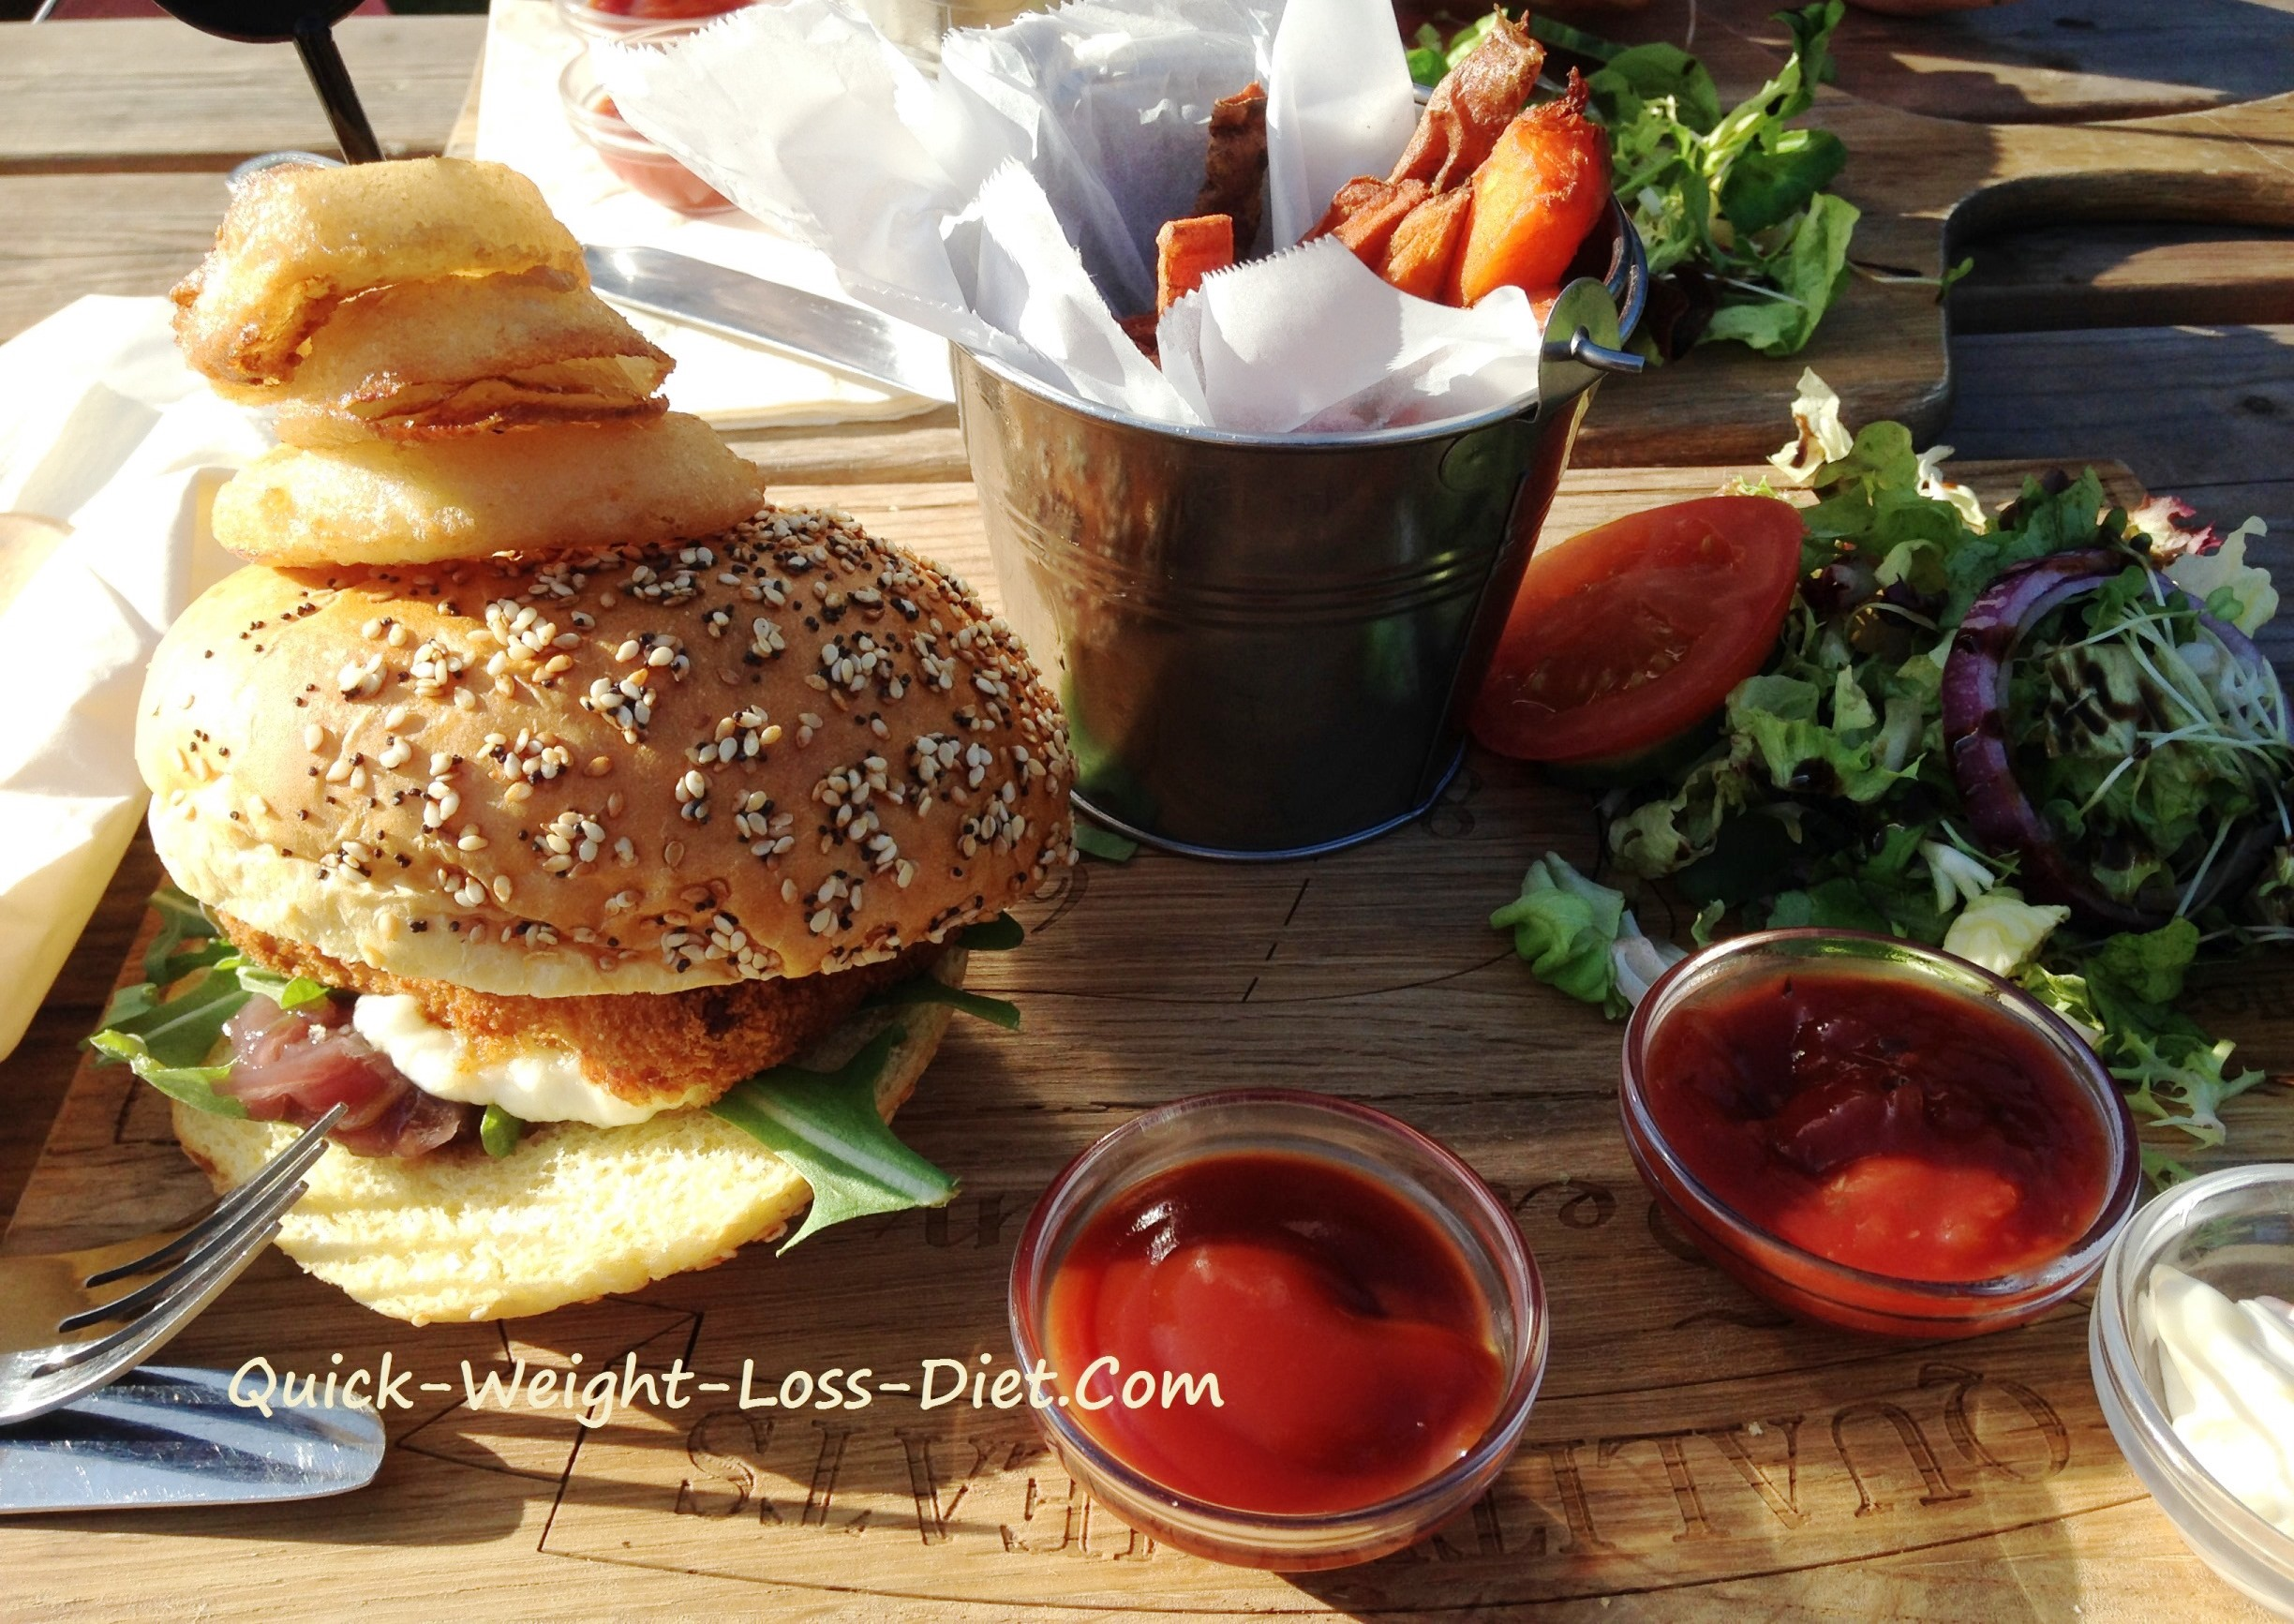 halloumi_burger_with_fries_salad